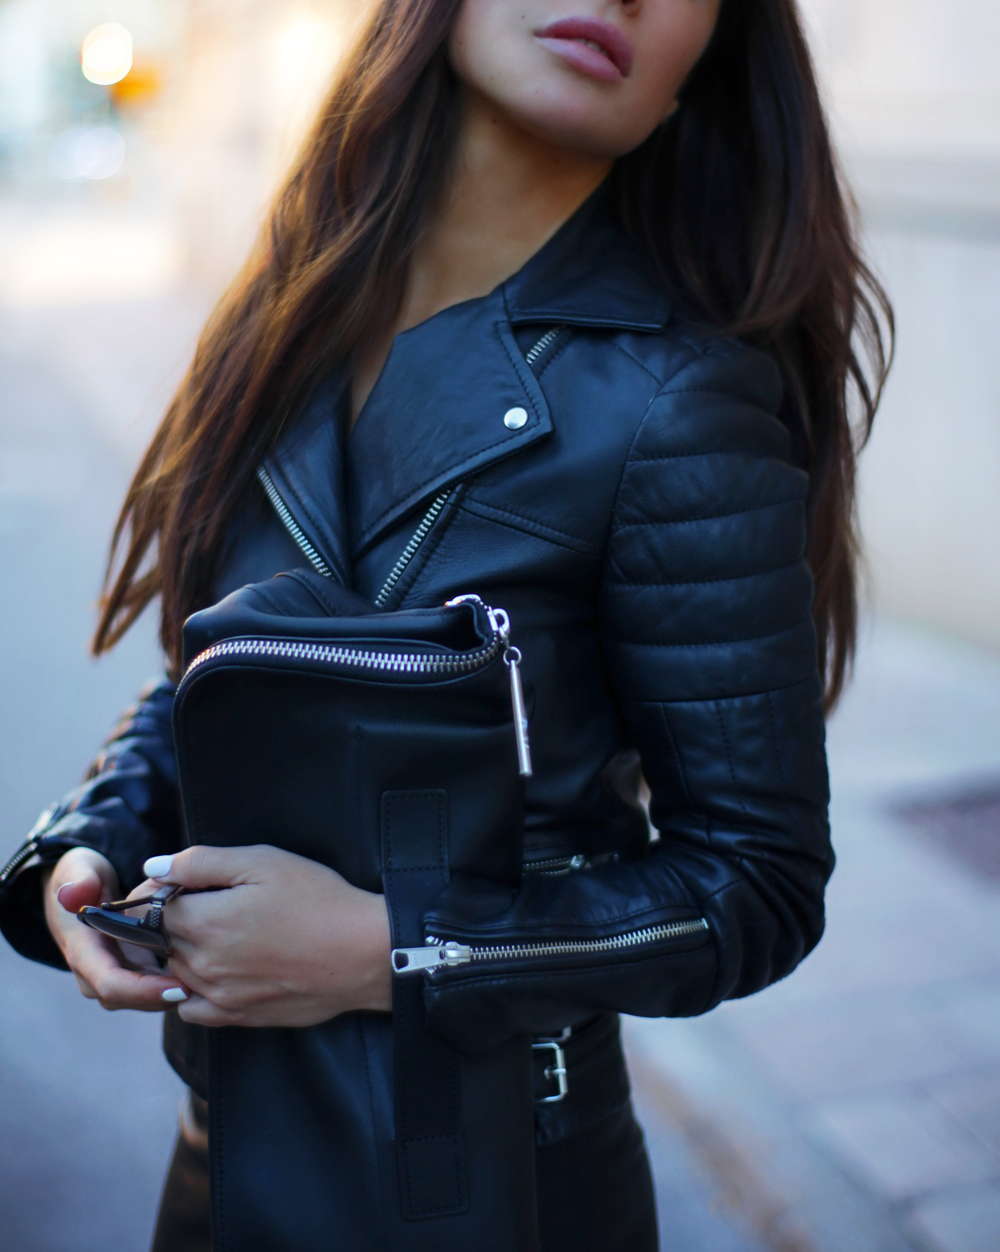 Johanna Olsson is wearing a bag from 3.1 Philip Lim and a leather jacket from Whistles